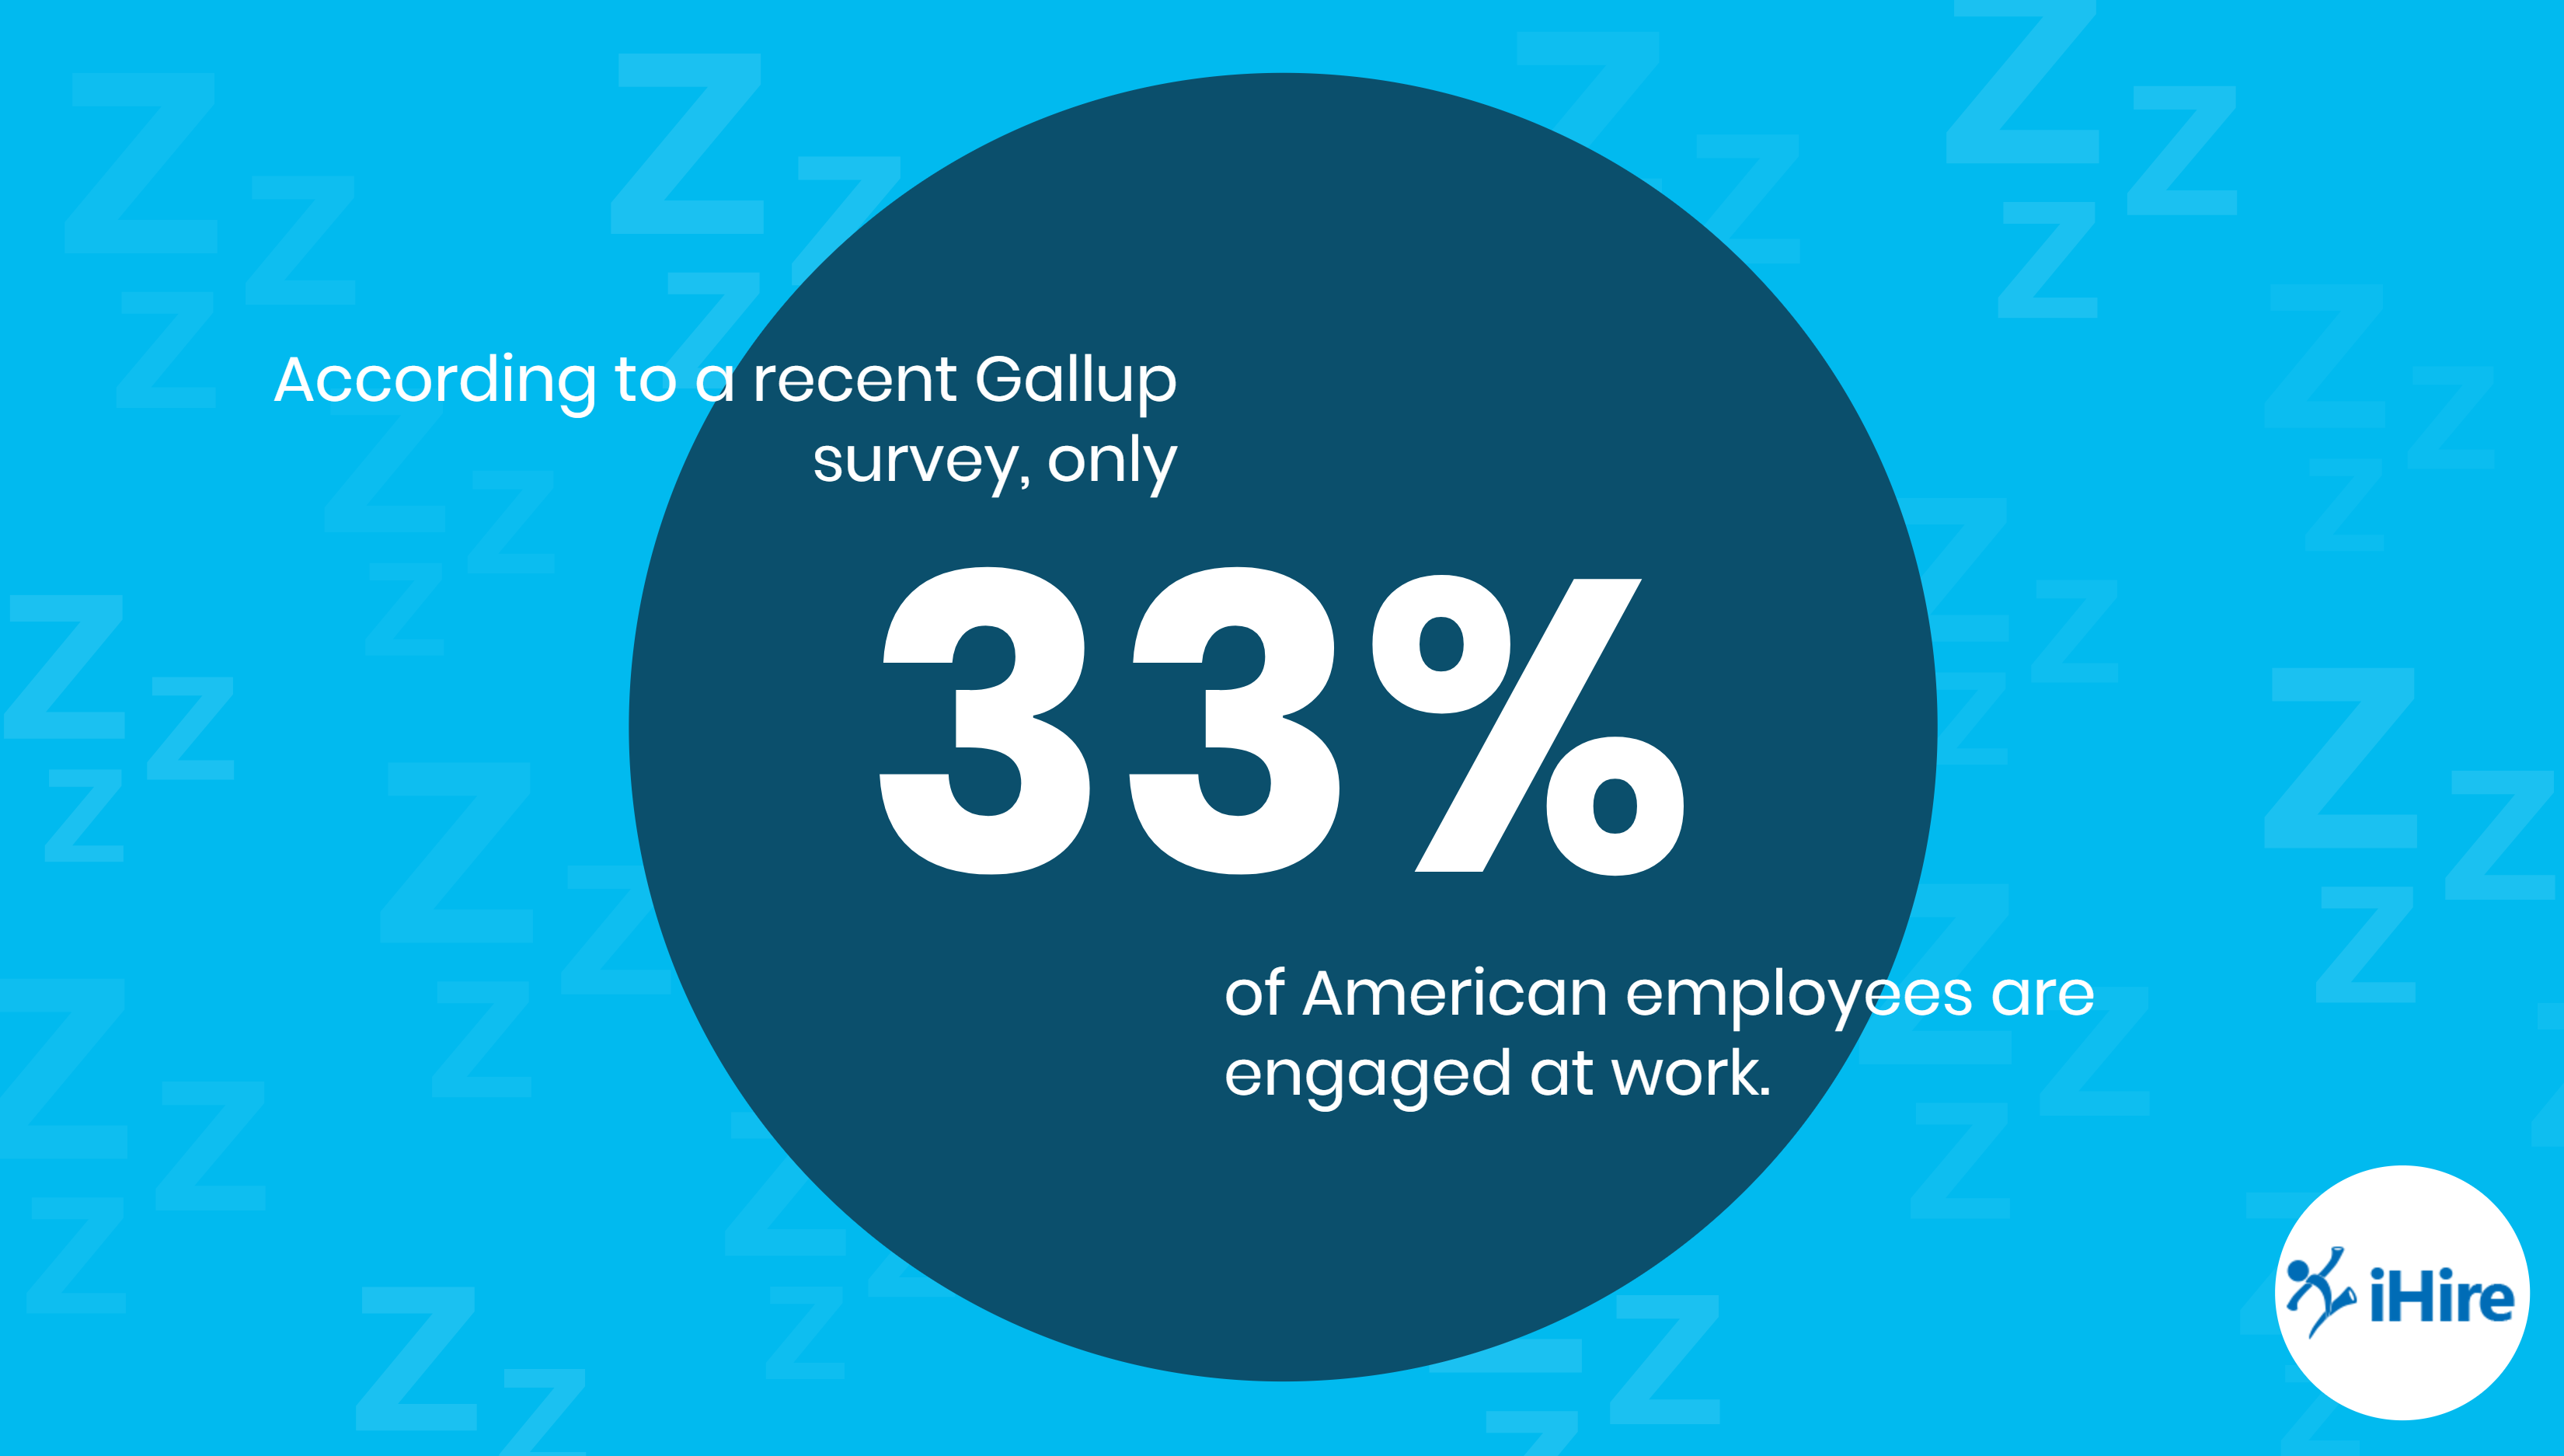 33% of American employees are engaged at work